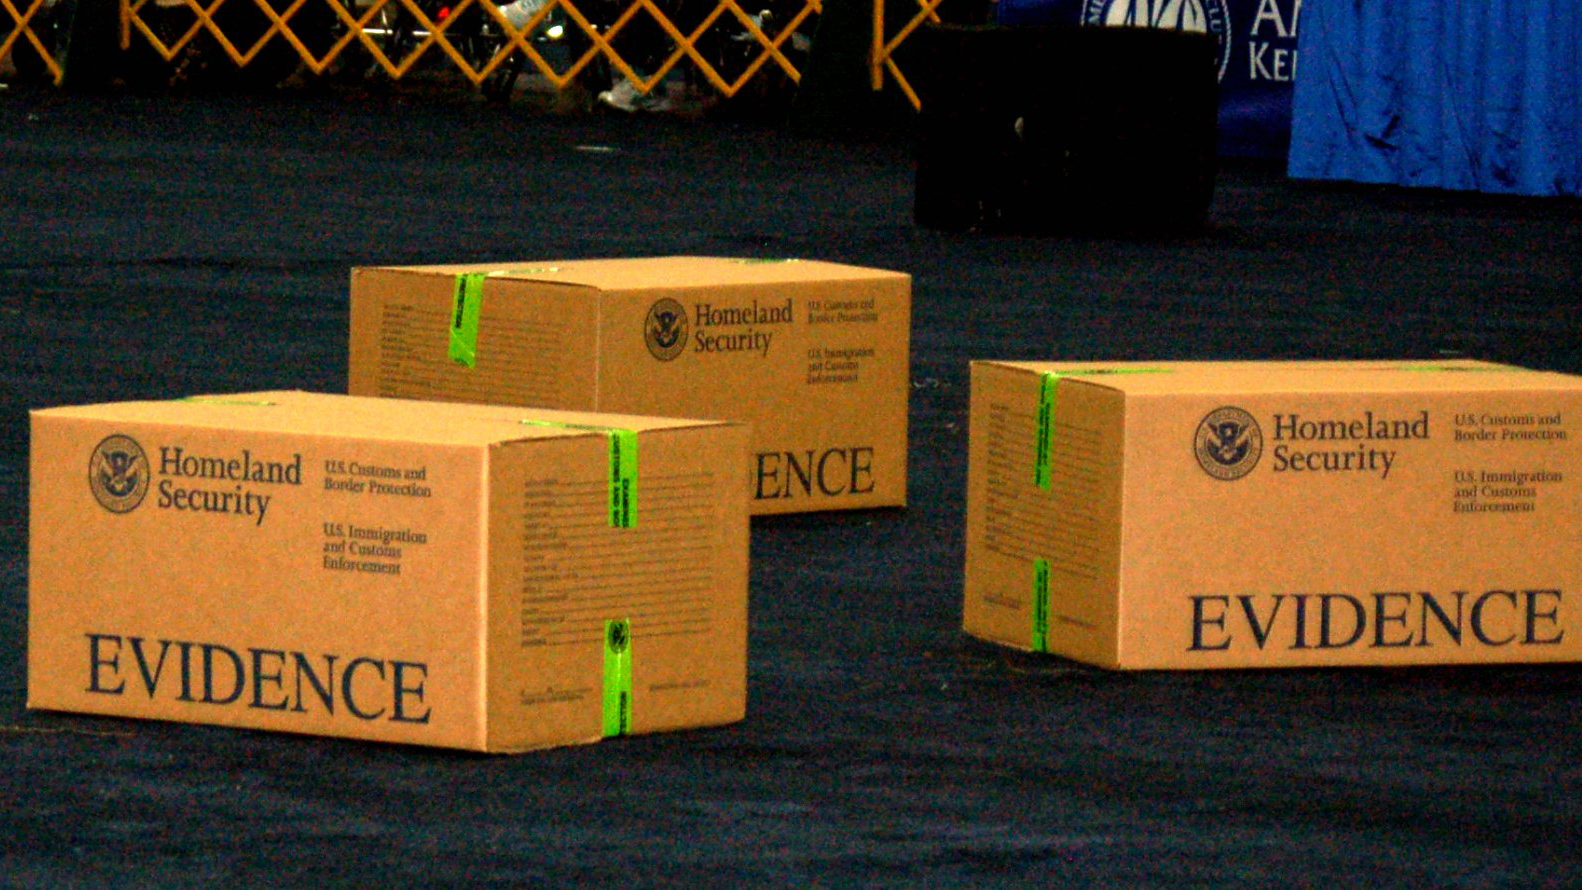 Homeland Security boxes of evidence